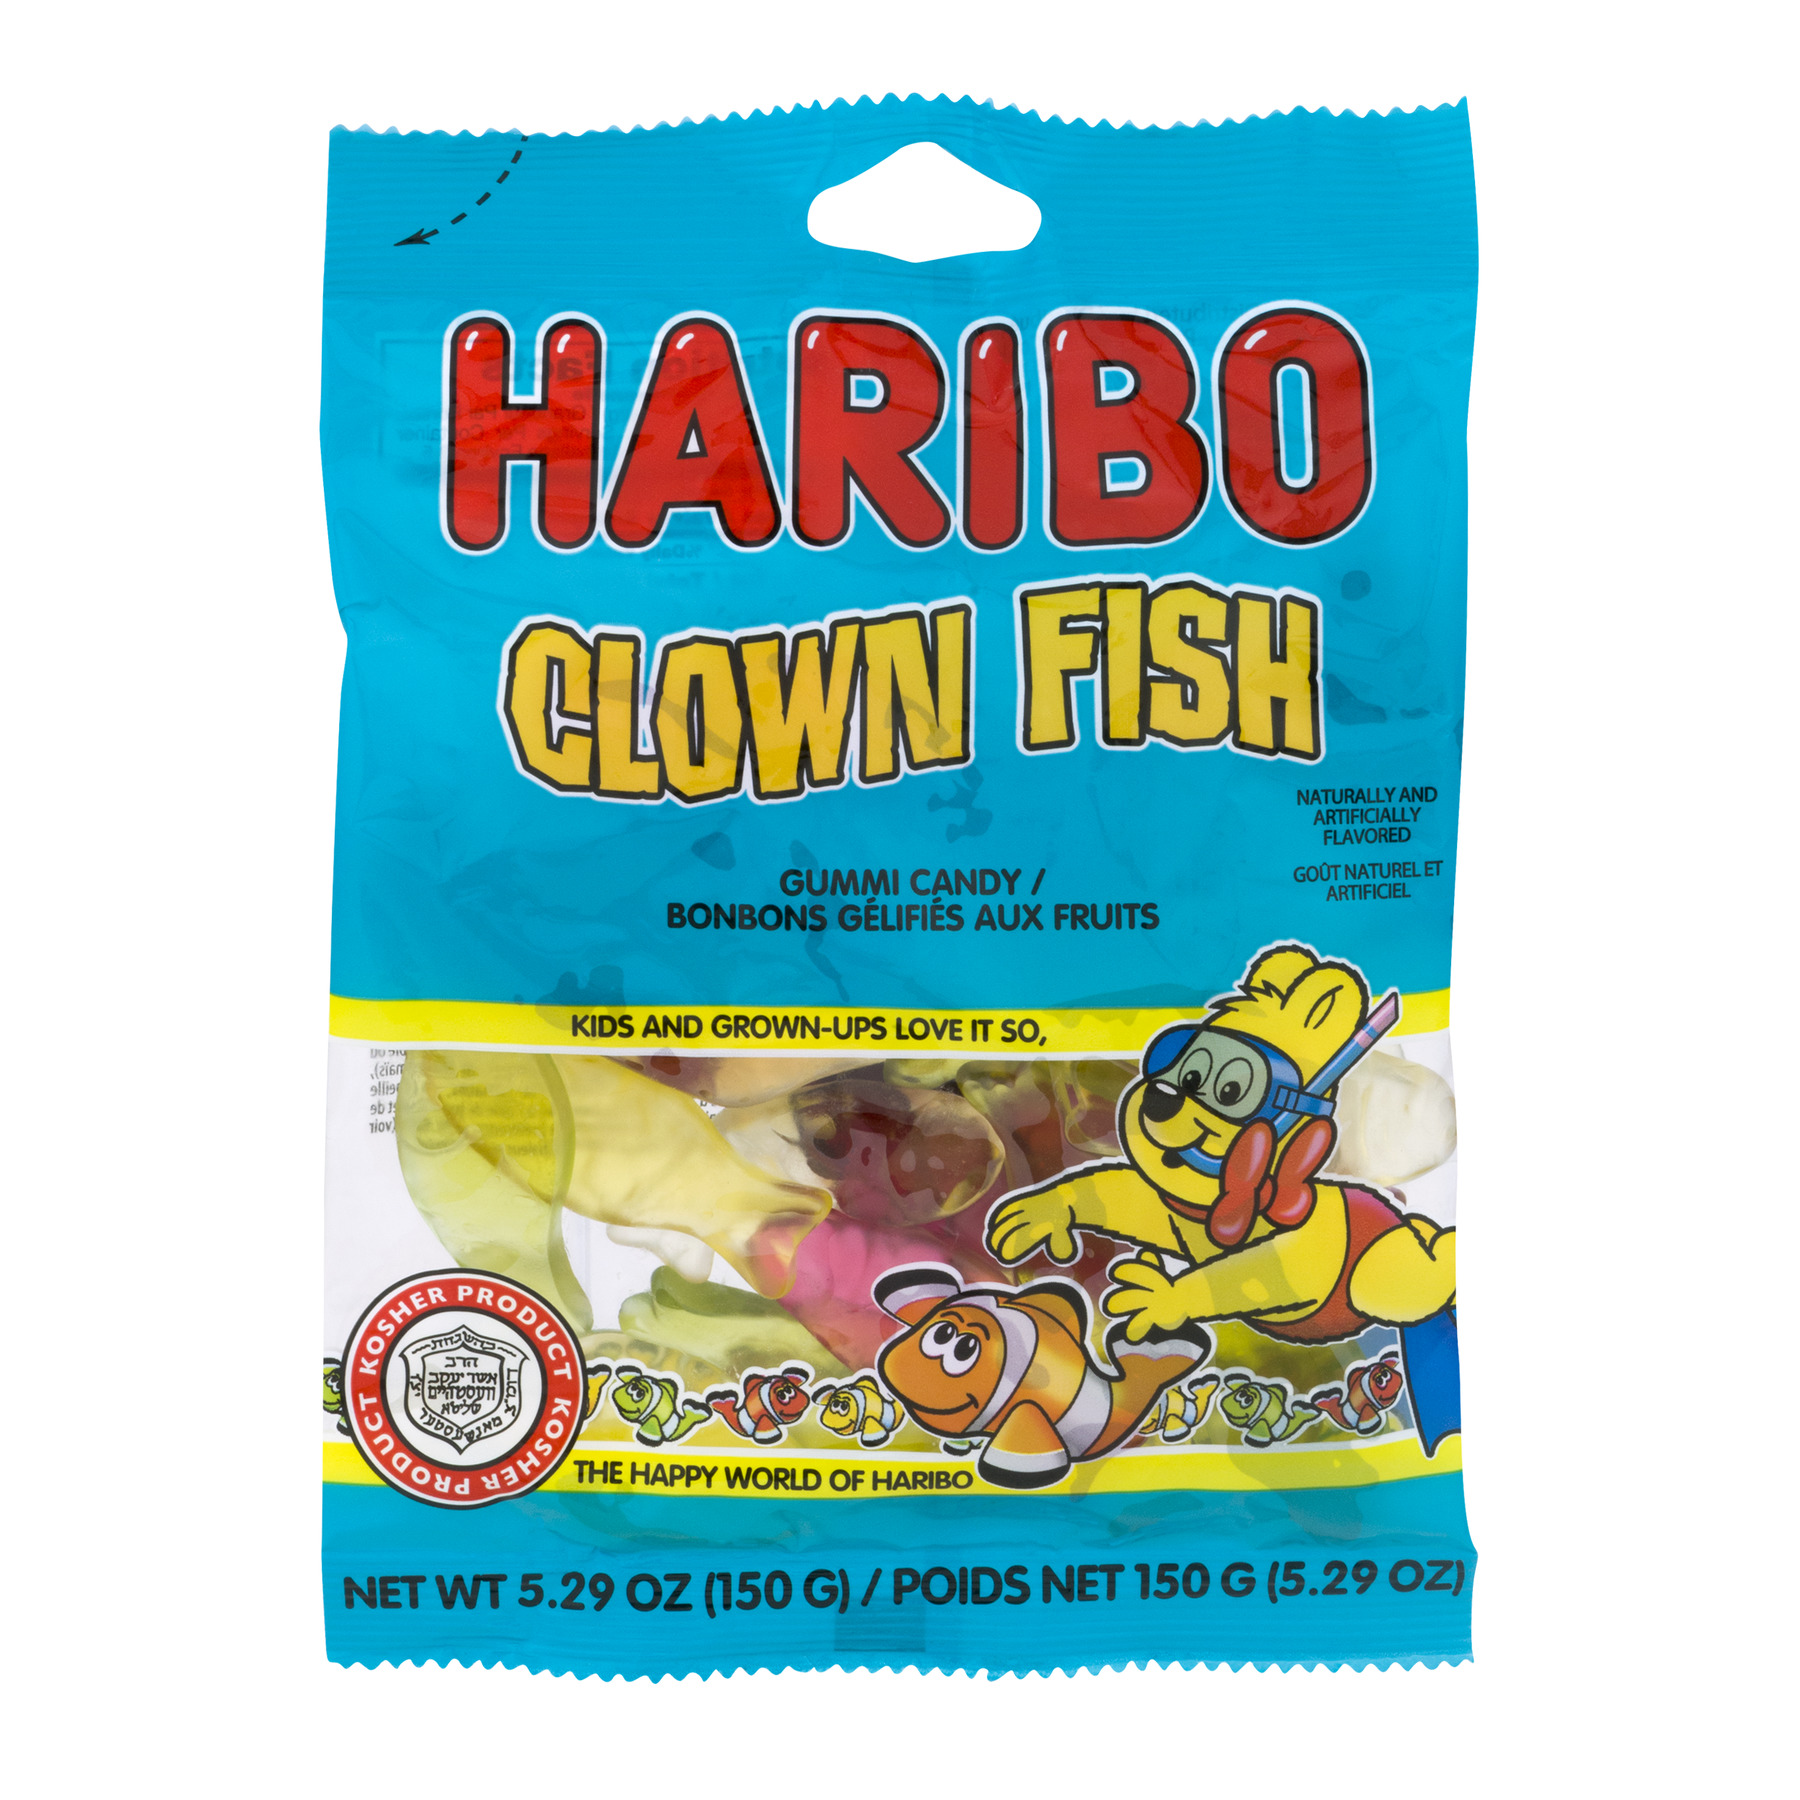 Haribo, Gummi Candy Clown Fish, 5.29 Oz